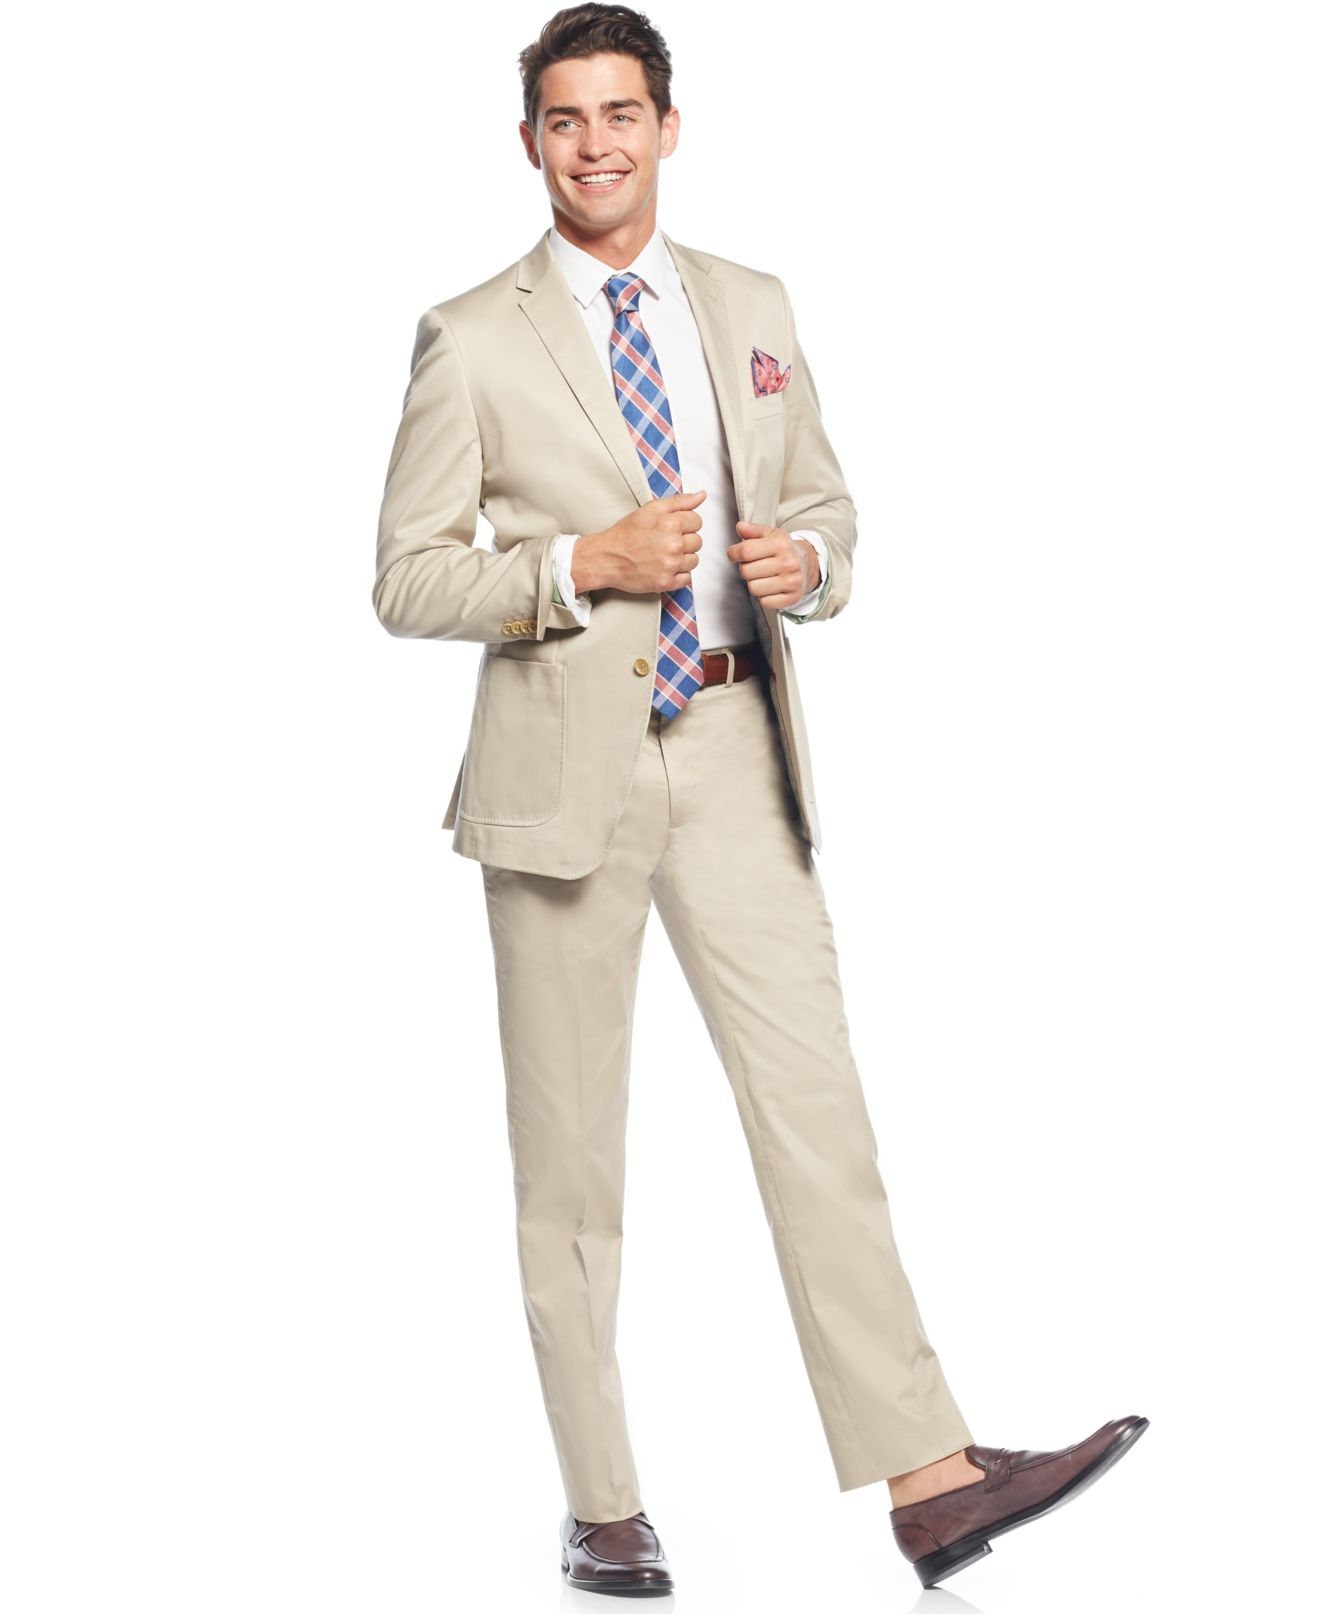 English laundry Cotton Khaki Solid Slim-fit Suit in Natural for